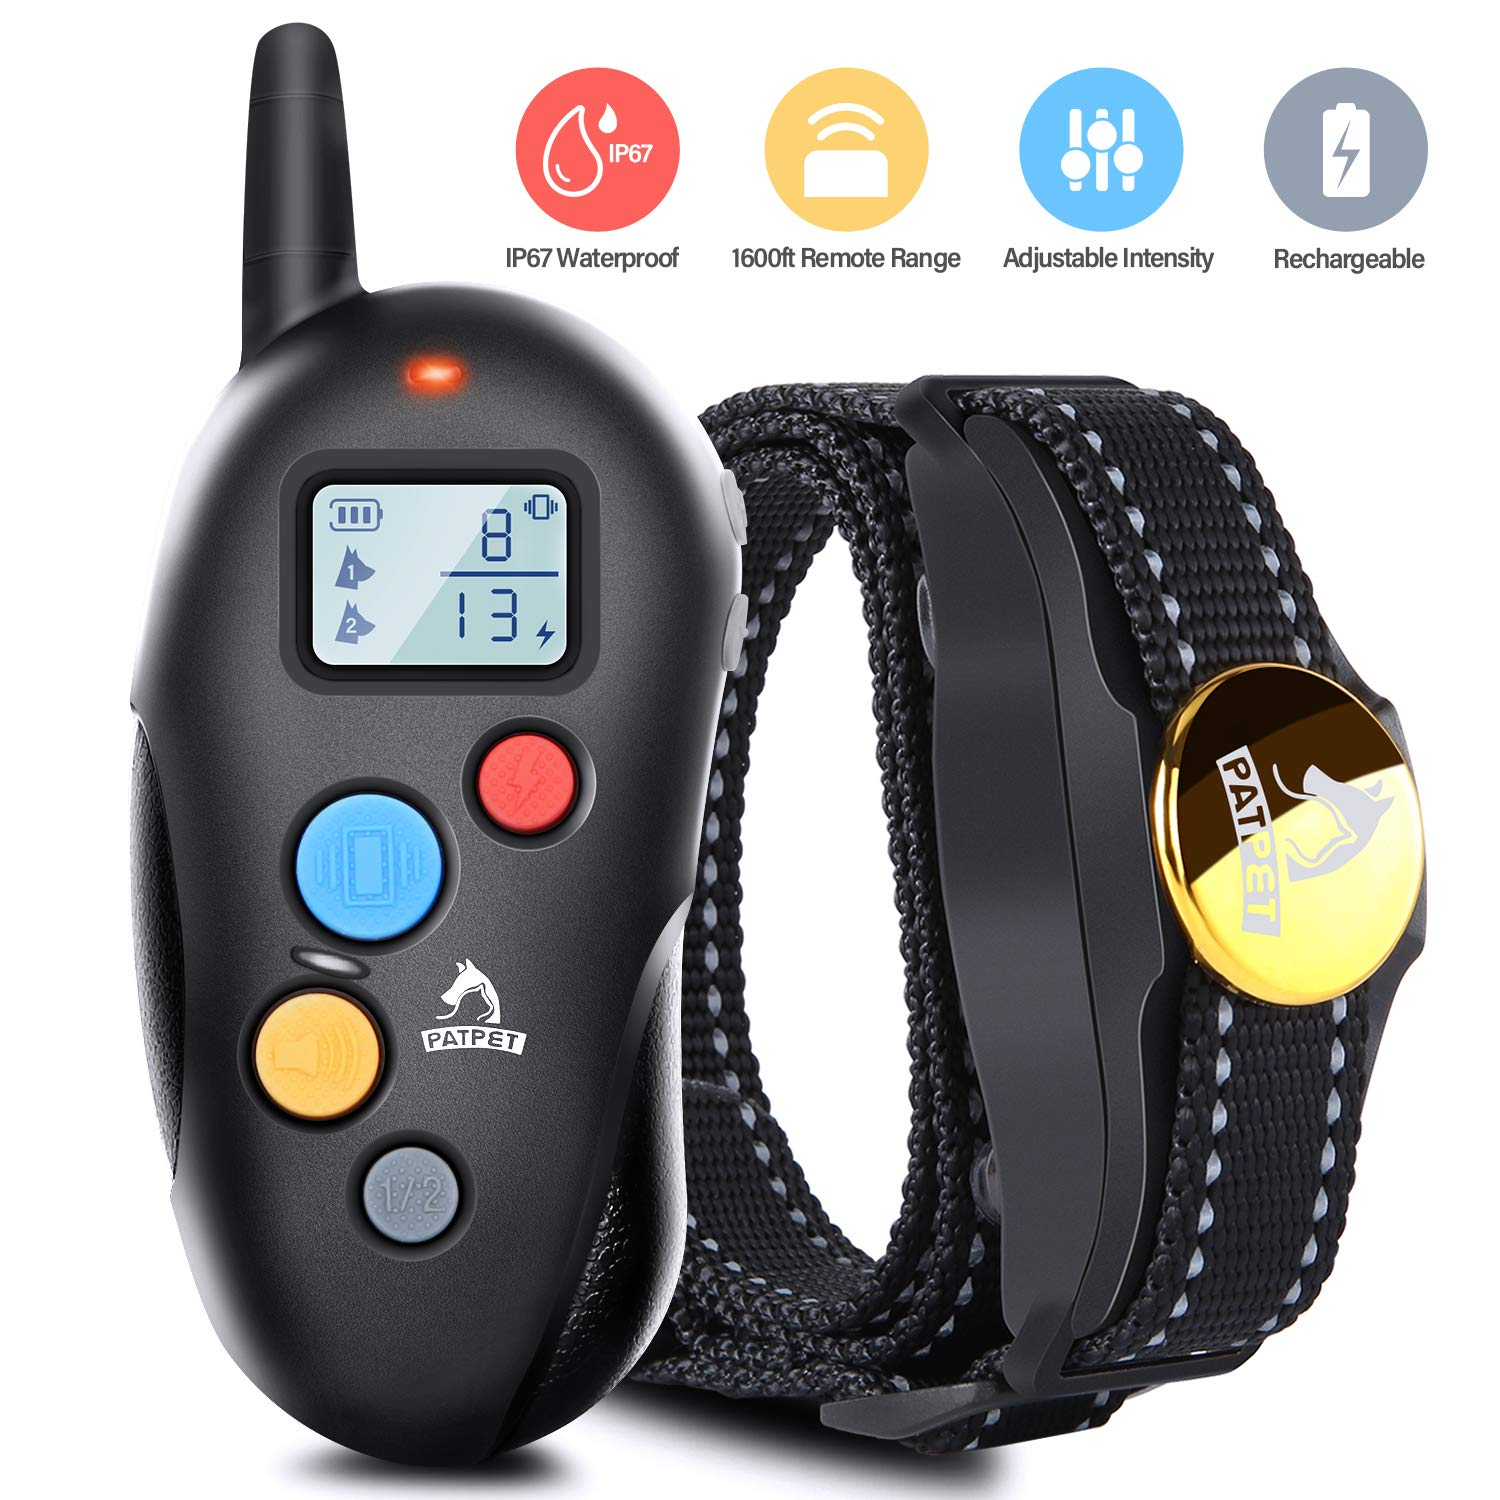 Patpet Dog Training Collar IPX7 Waterproof, Rechargeable Shock Collar for Dogs, 1600FT Long Remote Range, 3 Modes Beep/Vibration/Shock E Collar for All Sizes Dogs, Blind Operation& Mute Buttons Design